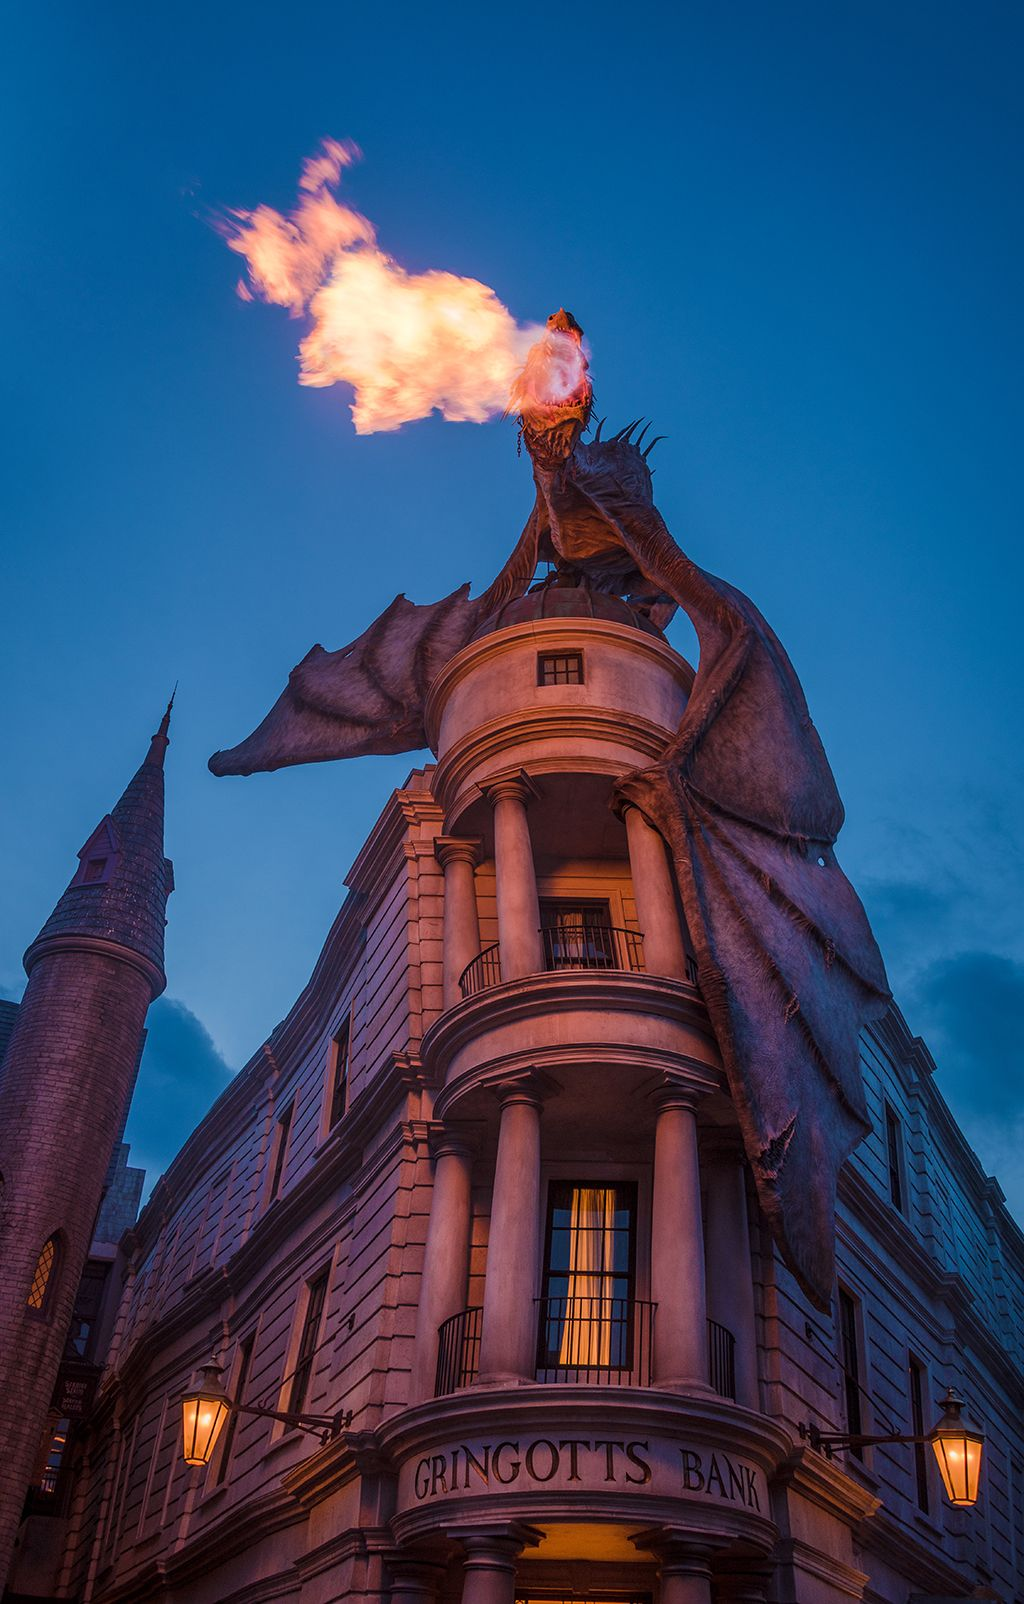 Universal Orlando Summer Trip Report - Part 2 - Tr